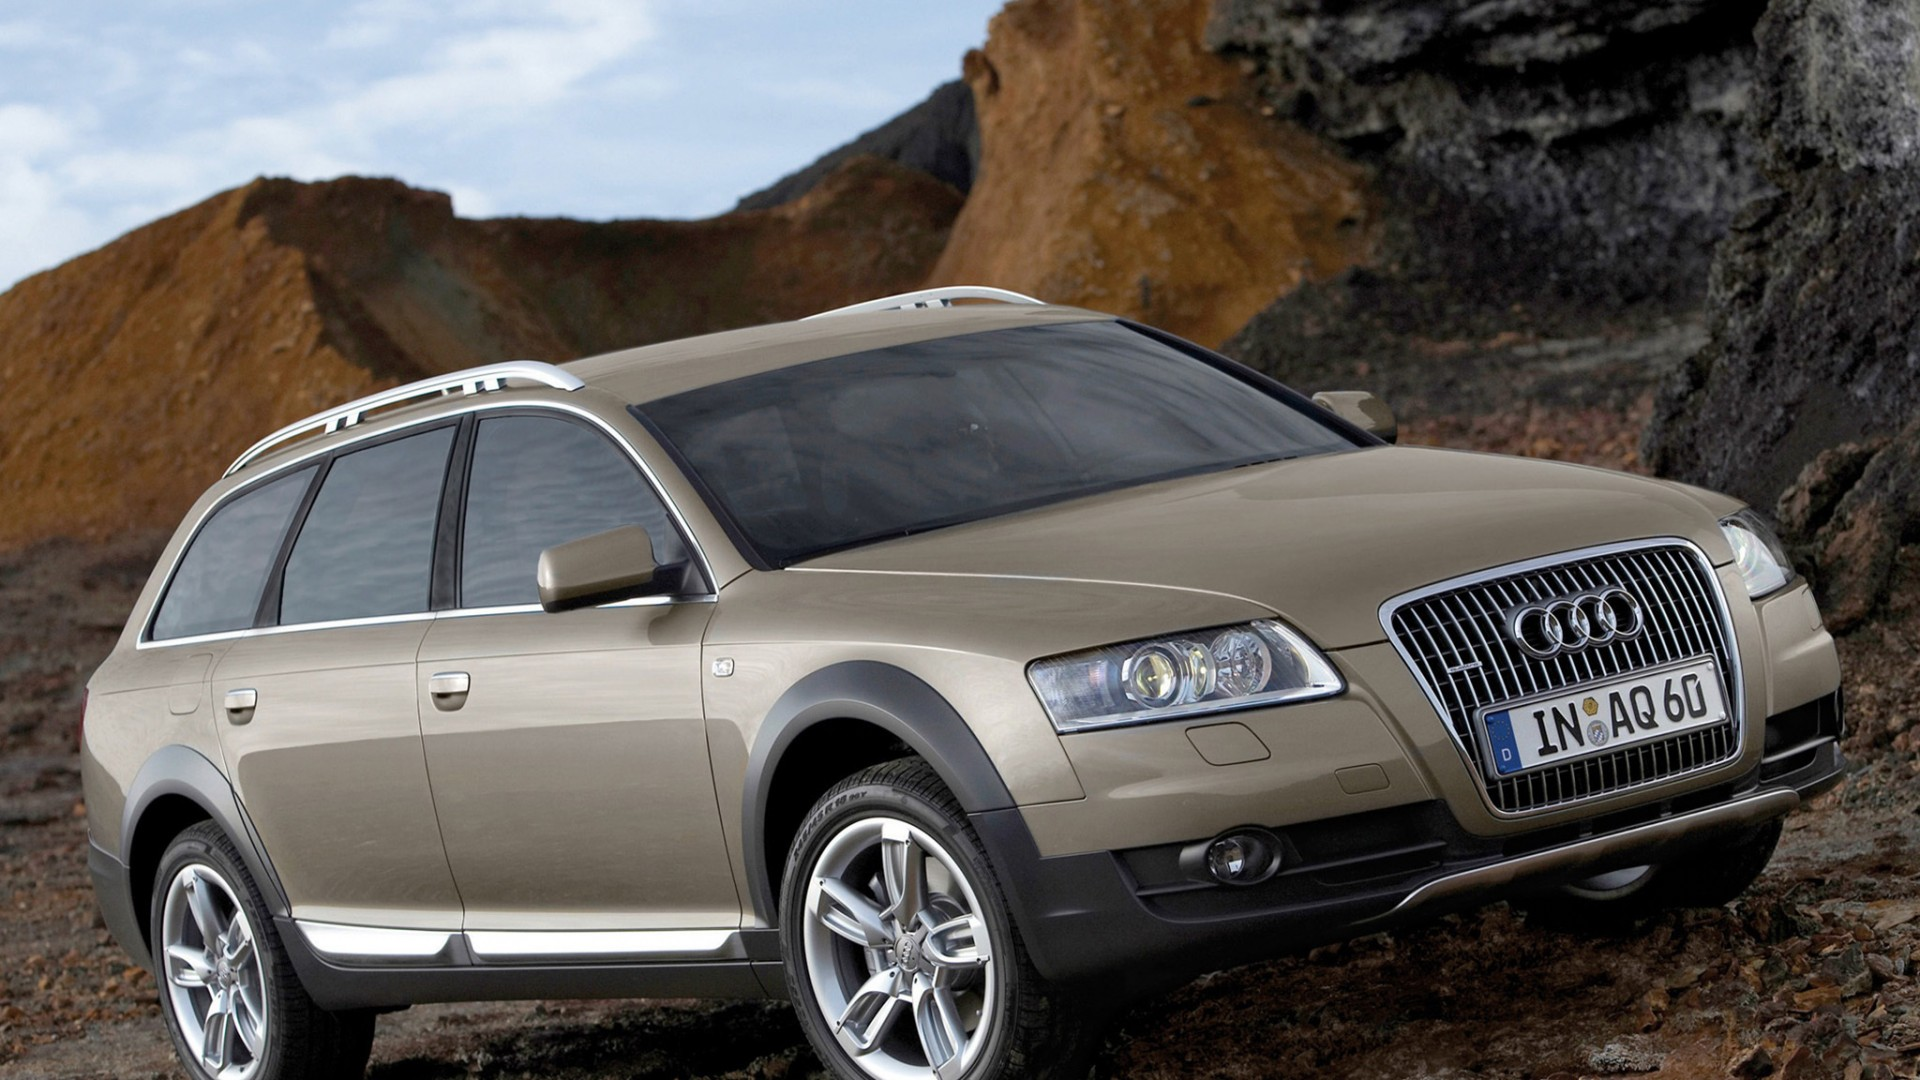 audi a6 allroad quattro 3 0 tdi photos 3 on better parts ltd. Black Bedroom Furniture Sets. Home Design Ideas